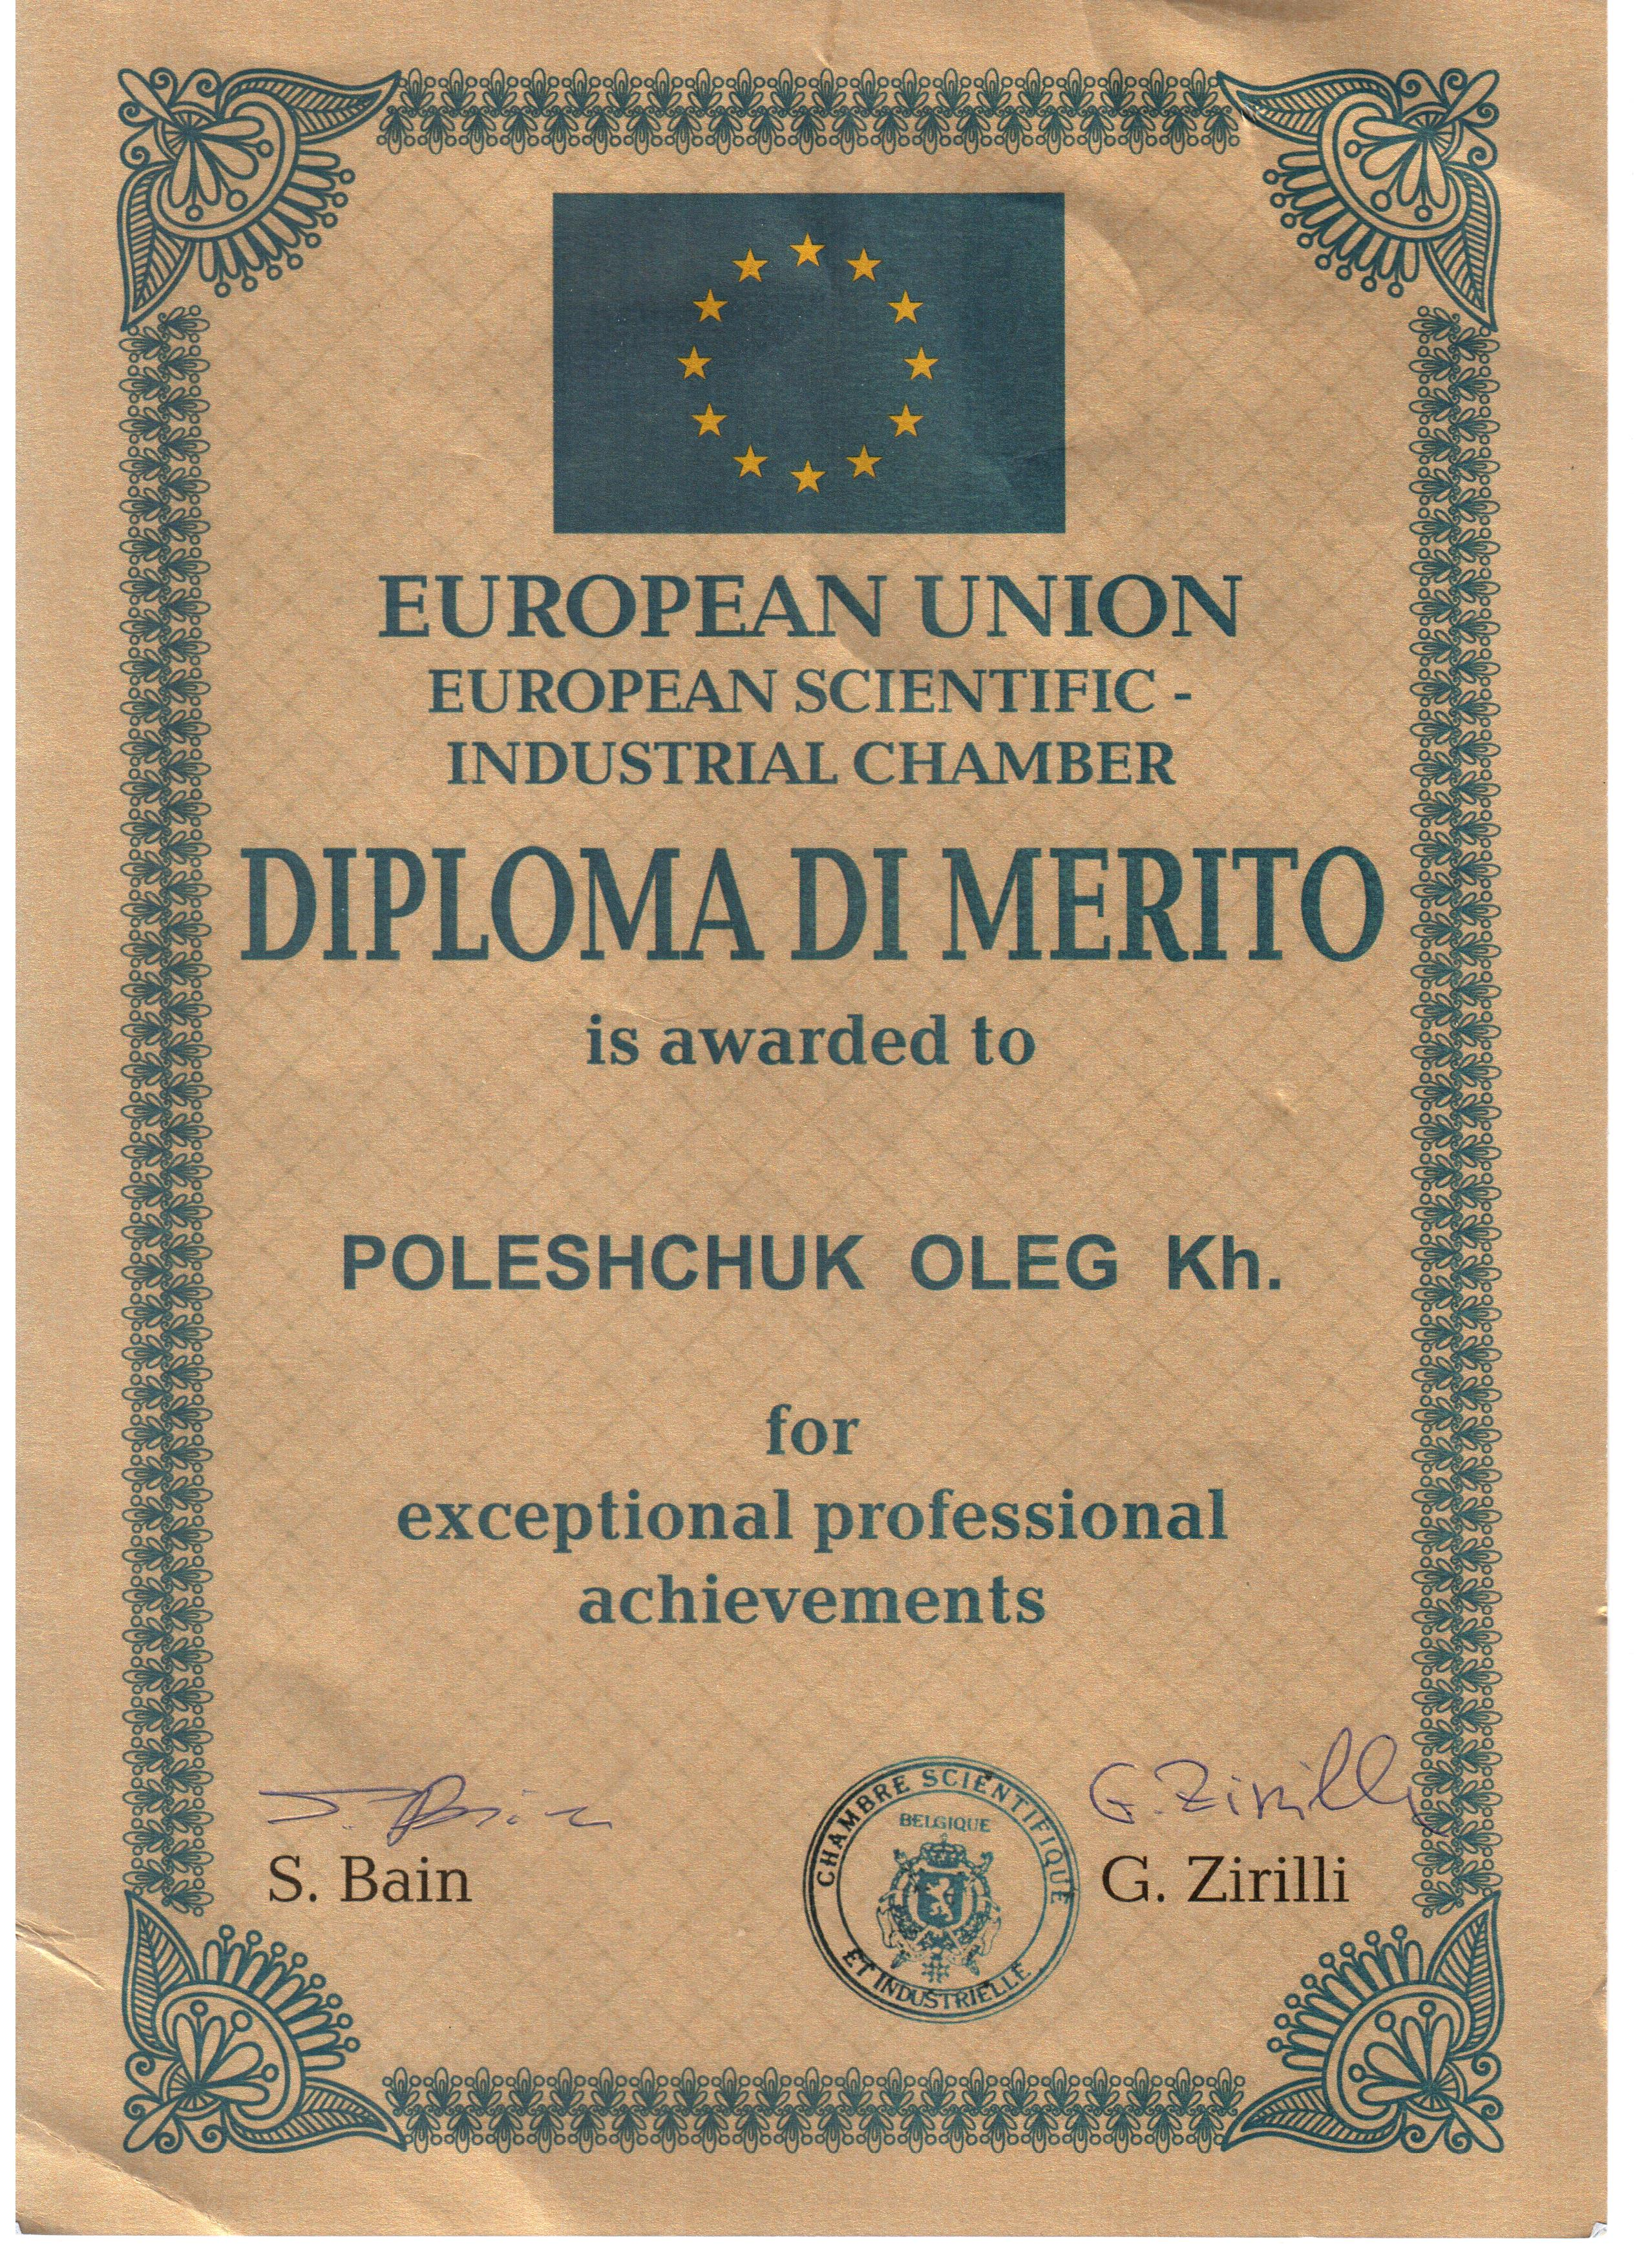 polishchuk oleg hemovich is awarded diplomas and medal of  these awards as claimed by the founders gives a number of privileges including the requirement to provide help and support by officials and can be used